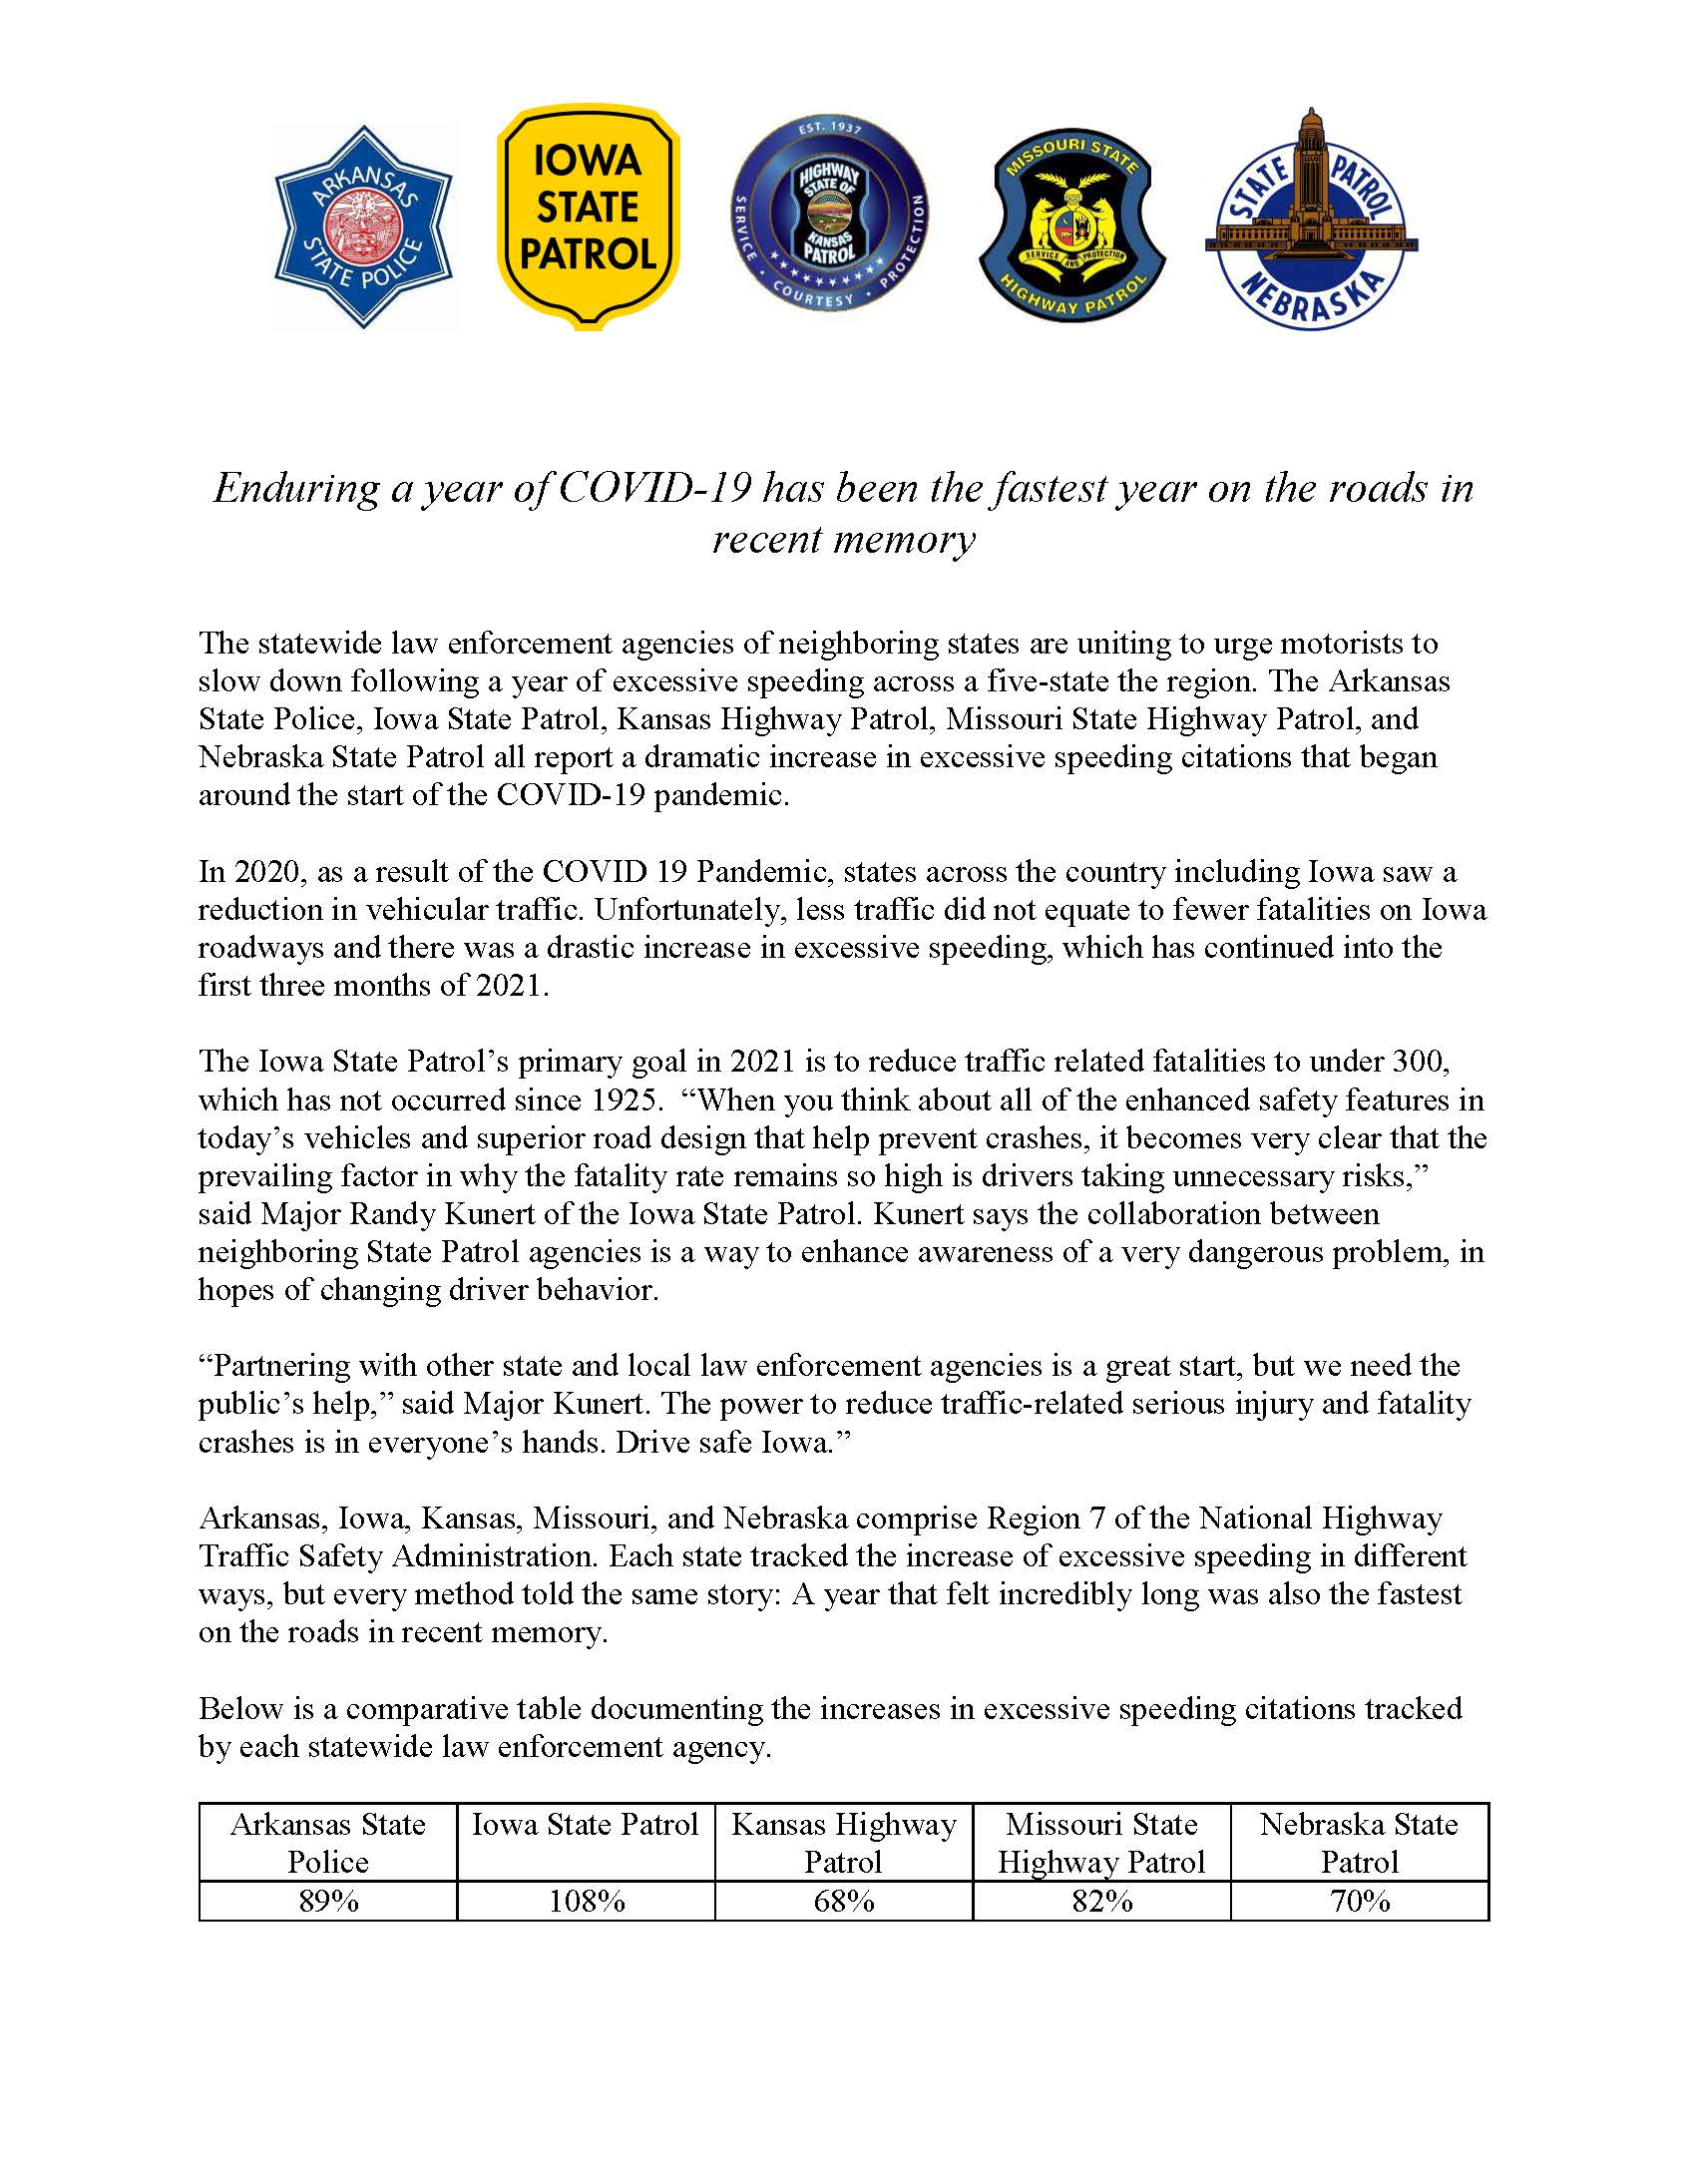 Link to page 1 of Region 7 press release